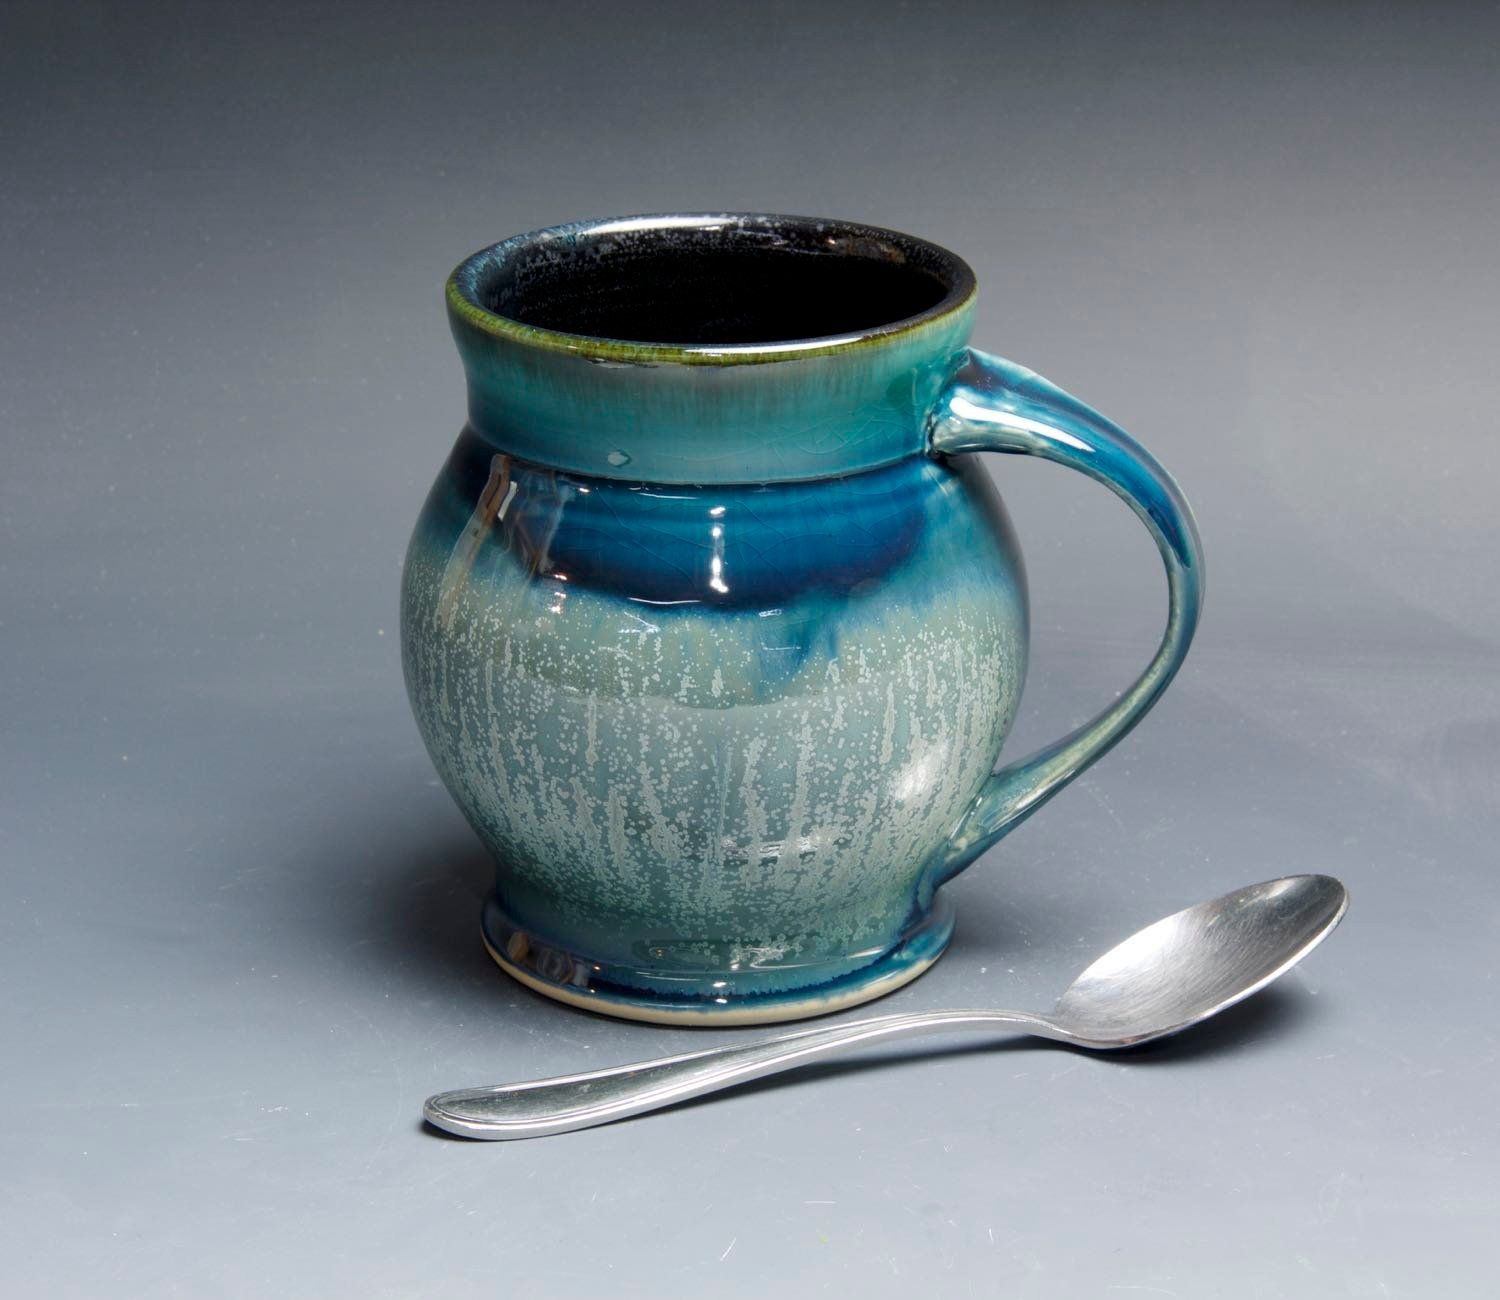 Thick silvery accents on this mug. 20 ounces. With blue green near the lip and black liner glaze ...